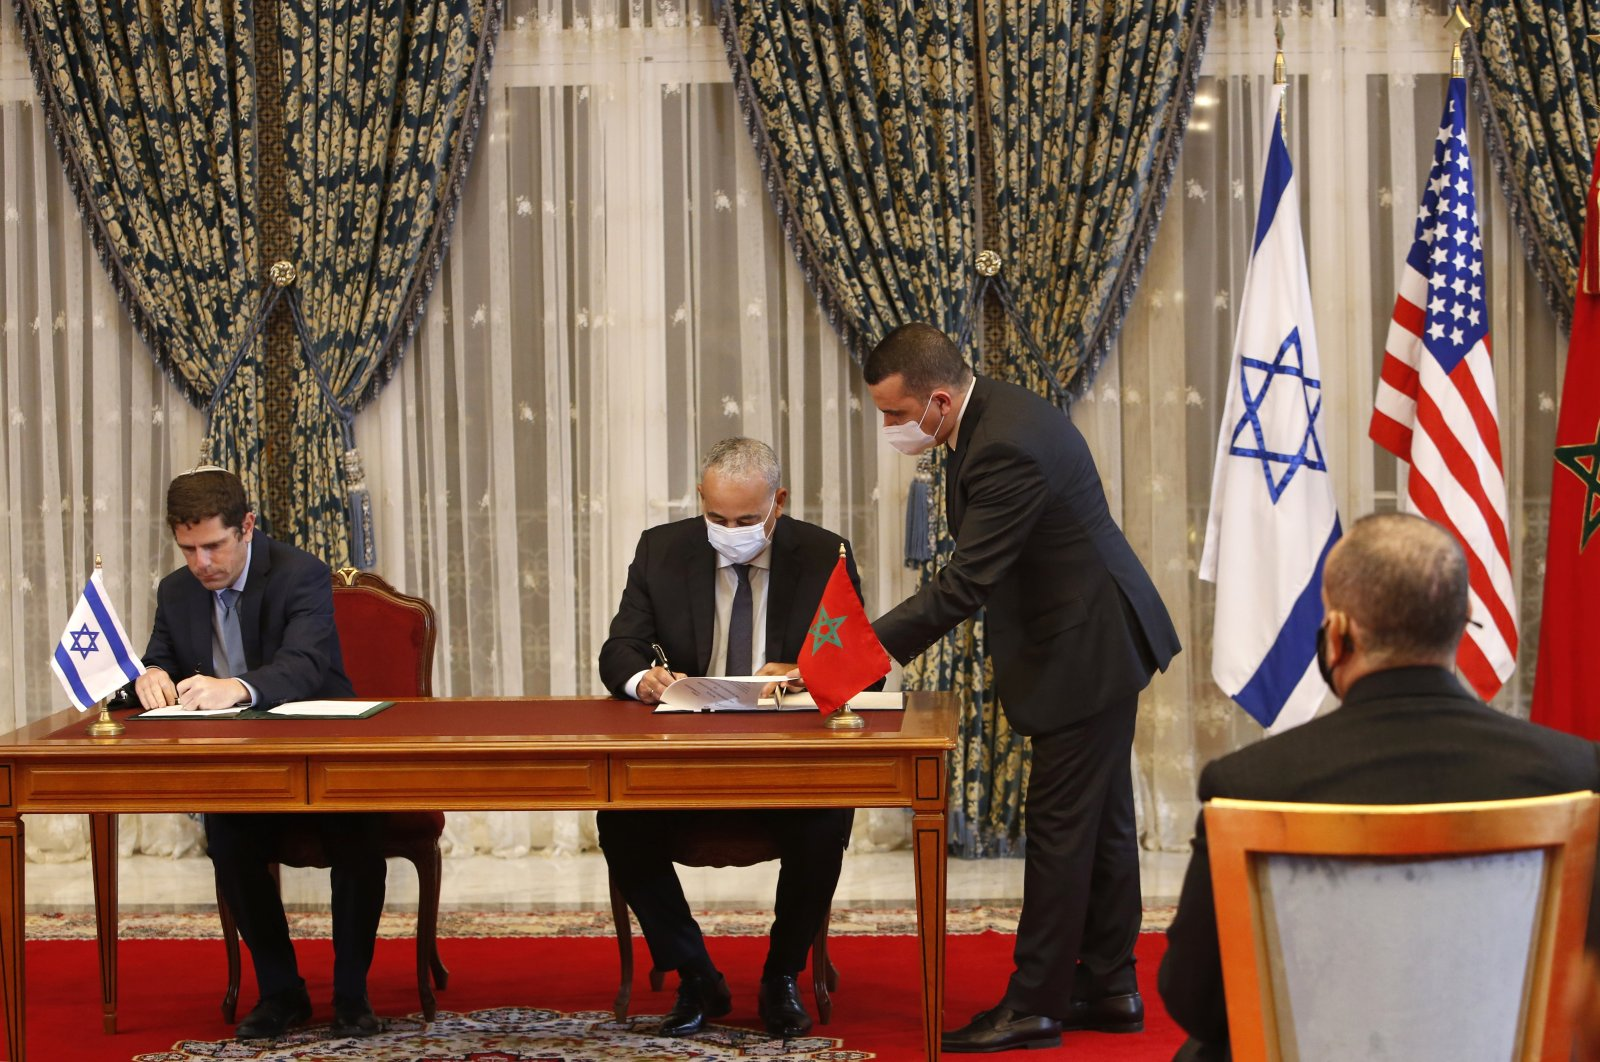 Morocco and Israel sign agreements on direct flights, financial cooperation, visa waivers for diplomats and water technology cooperation at the guest house next to the royal palace in Rabat, Morocco, Dec. 22, 2020. (AP Photo)